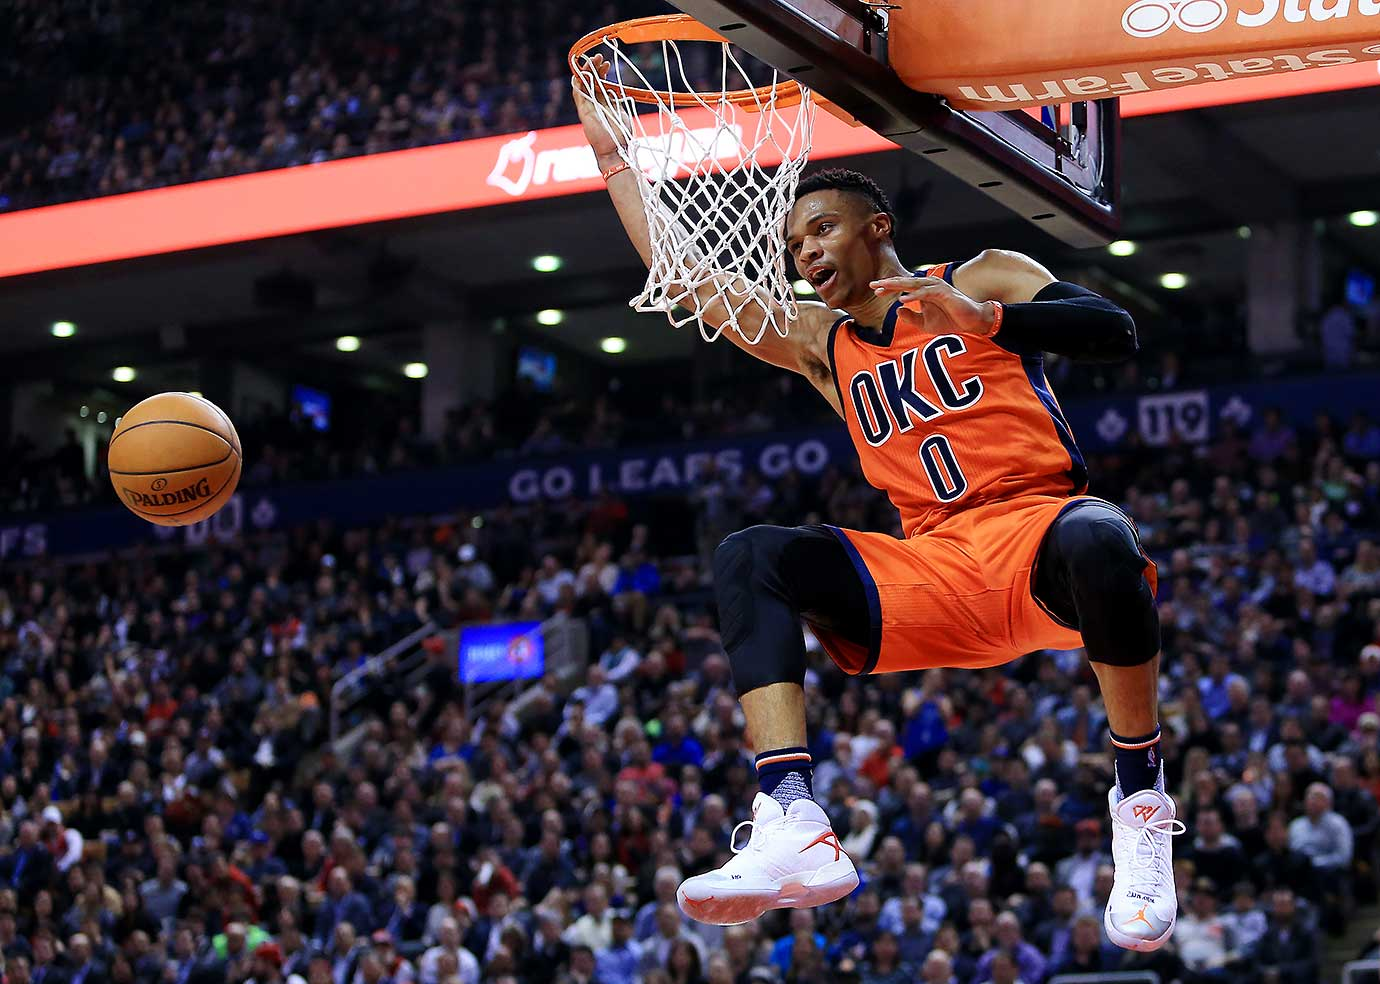 Russell Westbrook turned in his 16th triple-double of the season (26 points, 11 rebounds and 12 assists) to move with one of tying Magic Johnson for the most in a season.